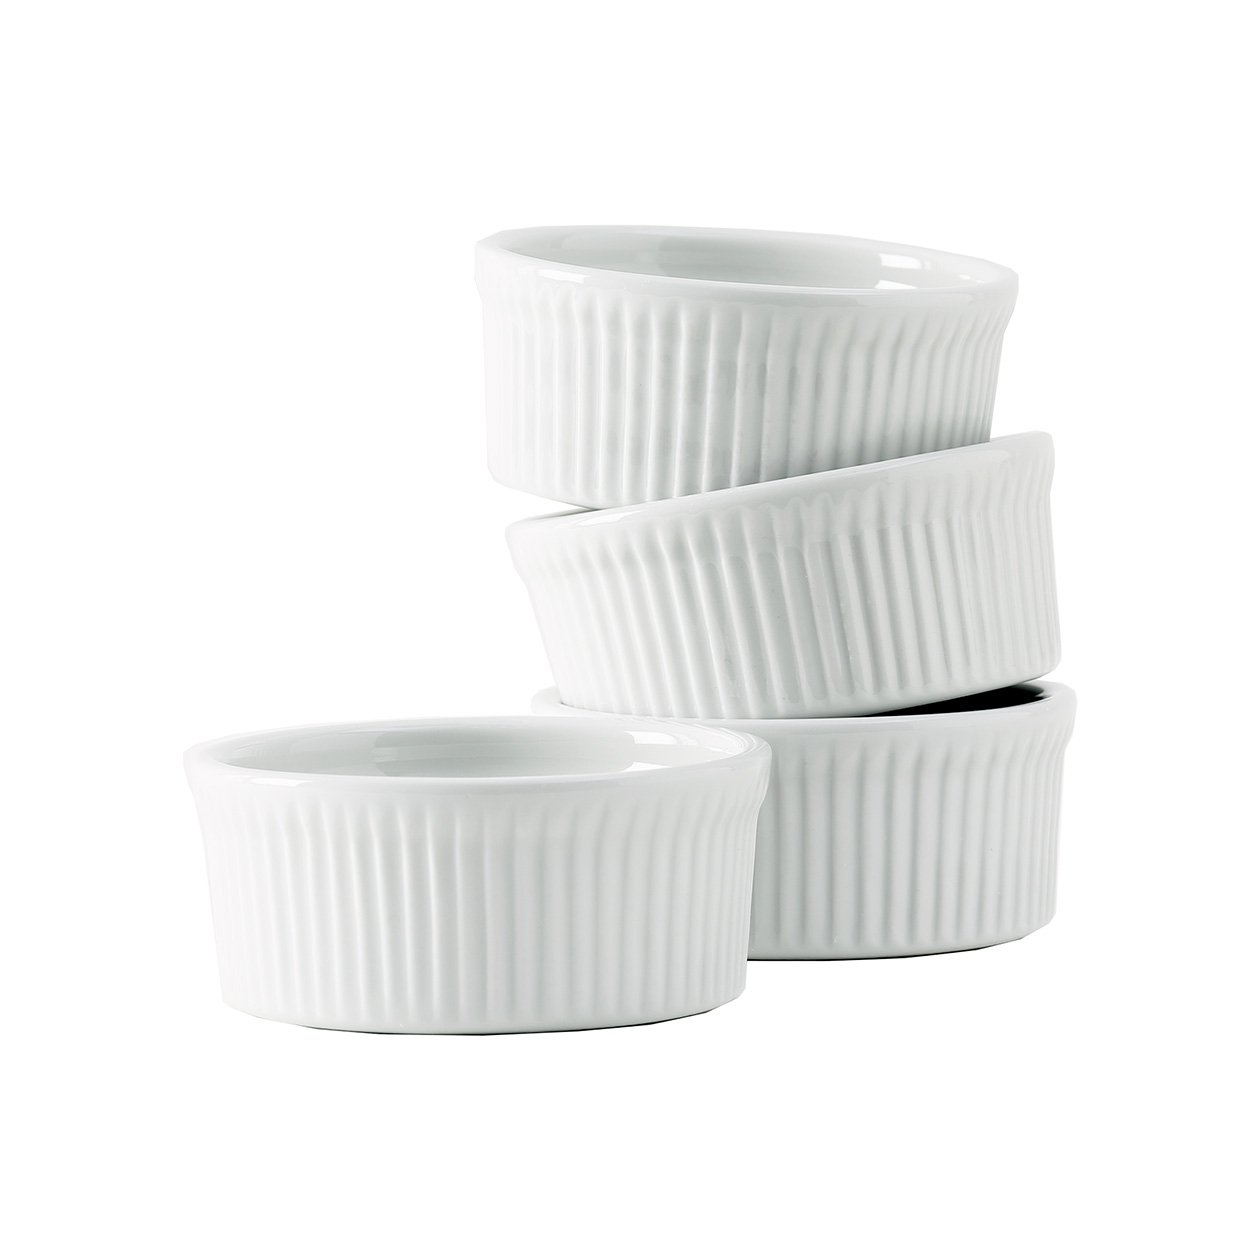 Tuxton Home Duratux Porcelain White Soufflà 10 oz - Set of 4; Heavy Duty; Chip Resistant; Lead and Cadmium Free; Freezer to Oven Safe up to 500F THBPX1002-4B